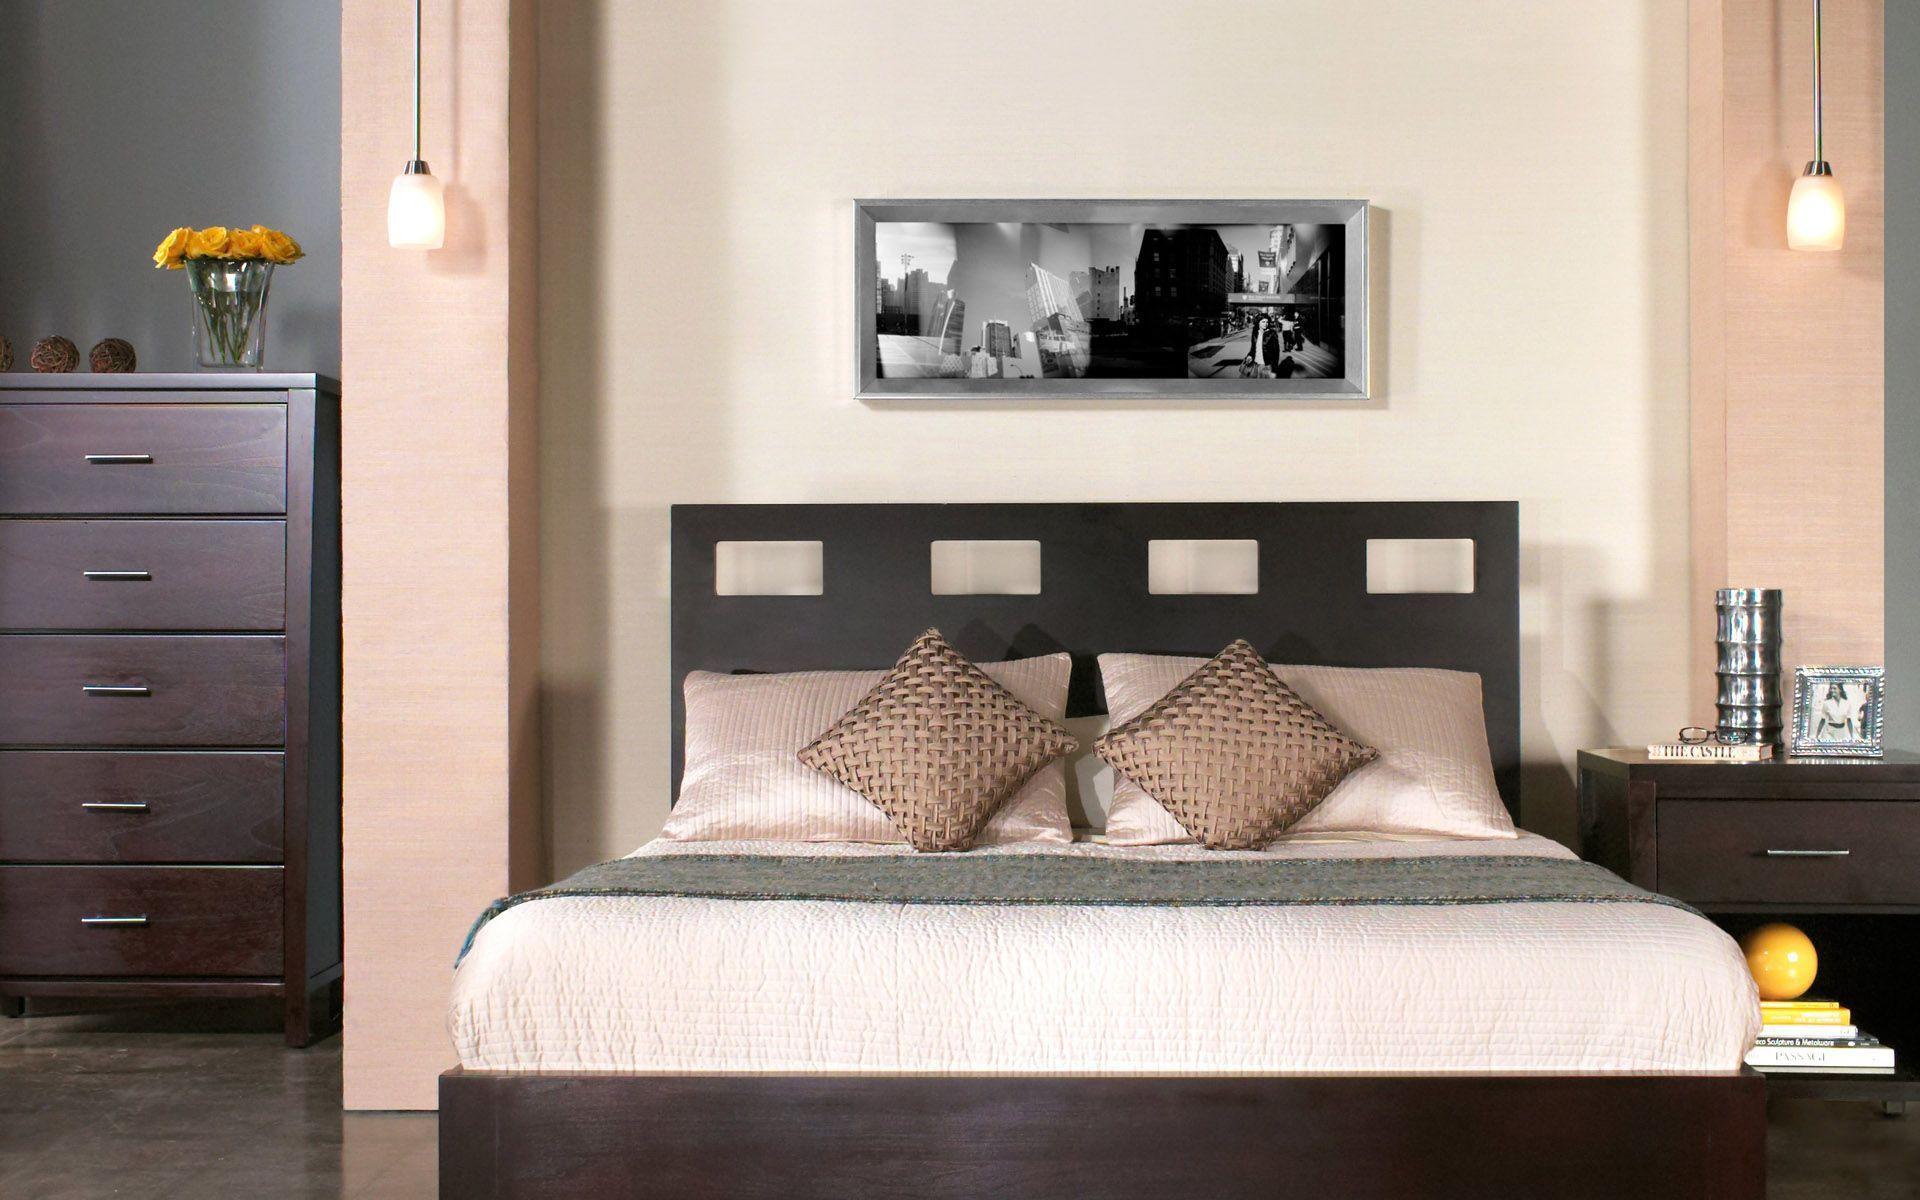 Wonderful Wall Art Completing Cozy Bedroom with Tiny Bedside Table Lamps and Dark Nightstand